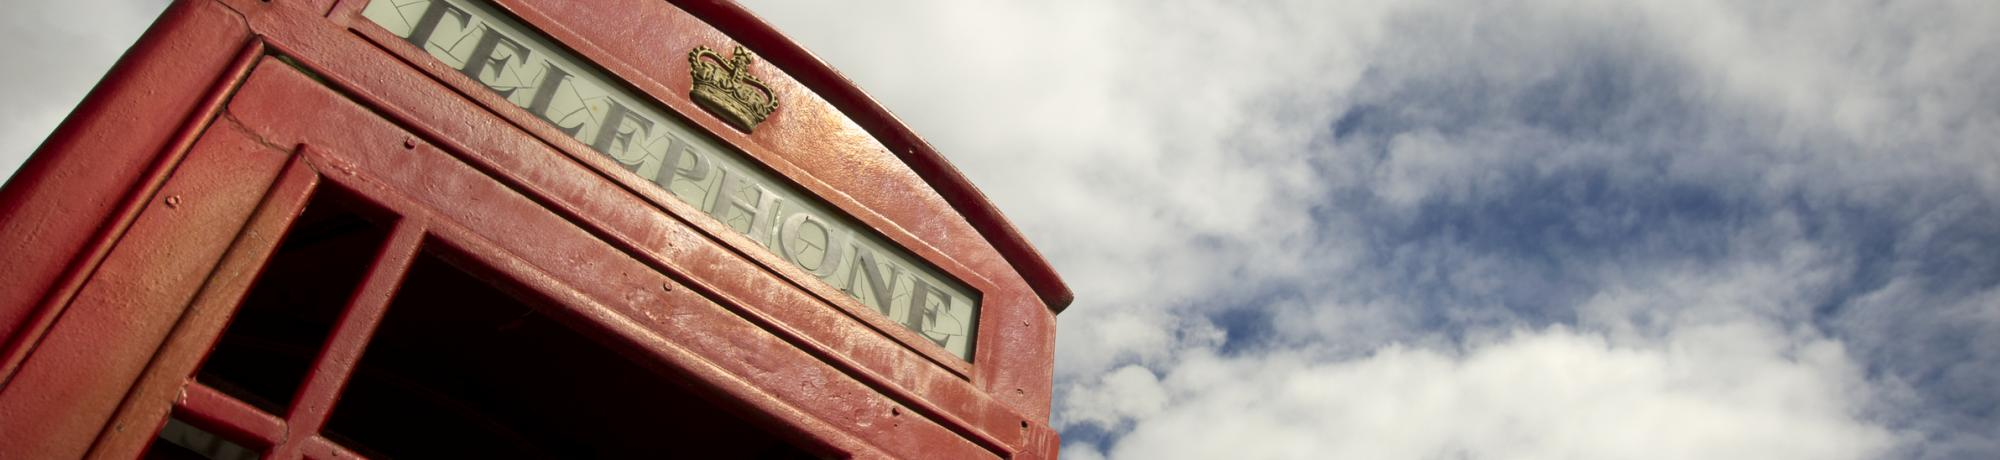 Image: vintage red phone booth and cloudy blue sky overhead.